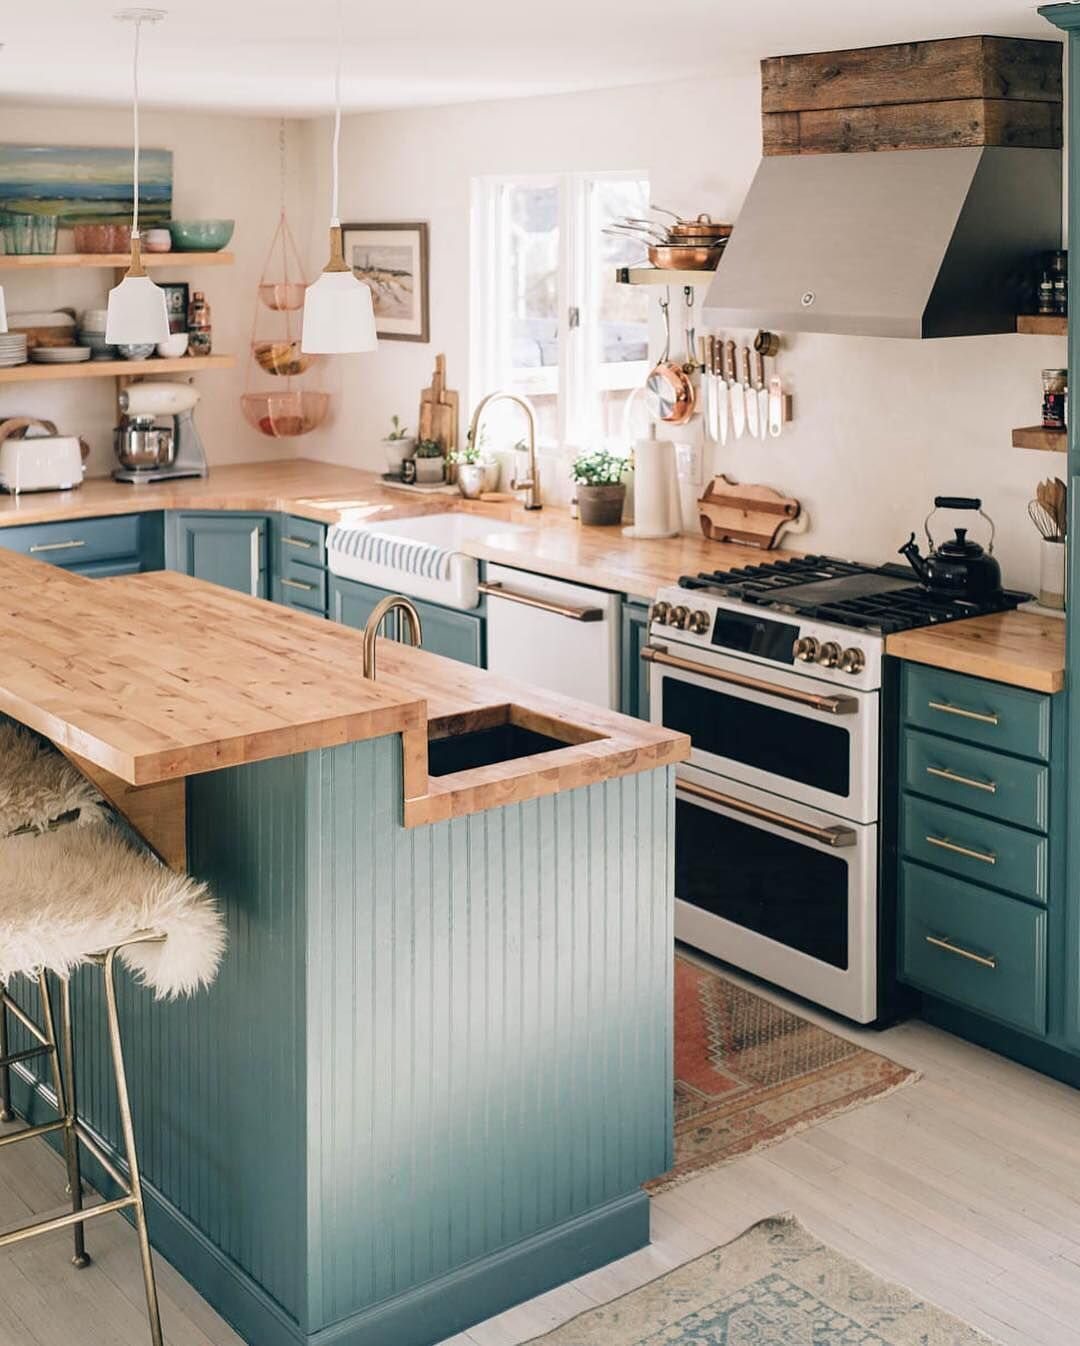 Apartment Therapy On Instagram Obsessed With This Kitchen Image Thecozyranc Interior Design Kitchen Small Small Kitchen Inspiration Small Kitchen Tables